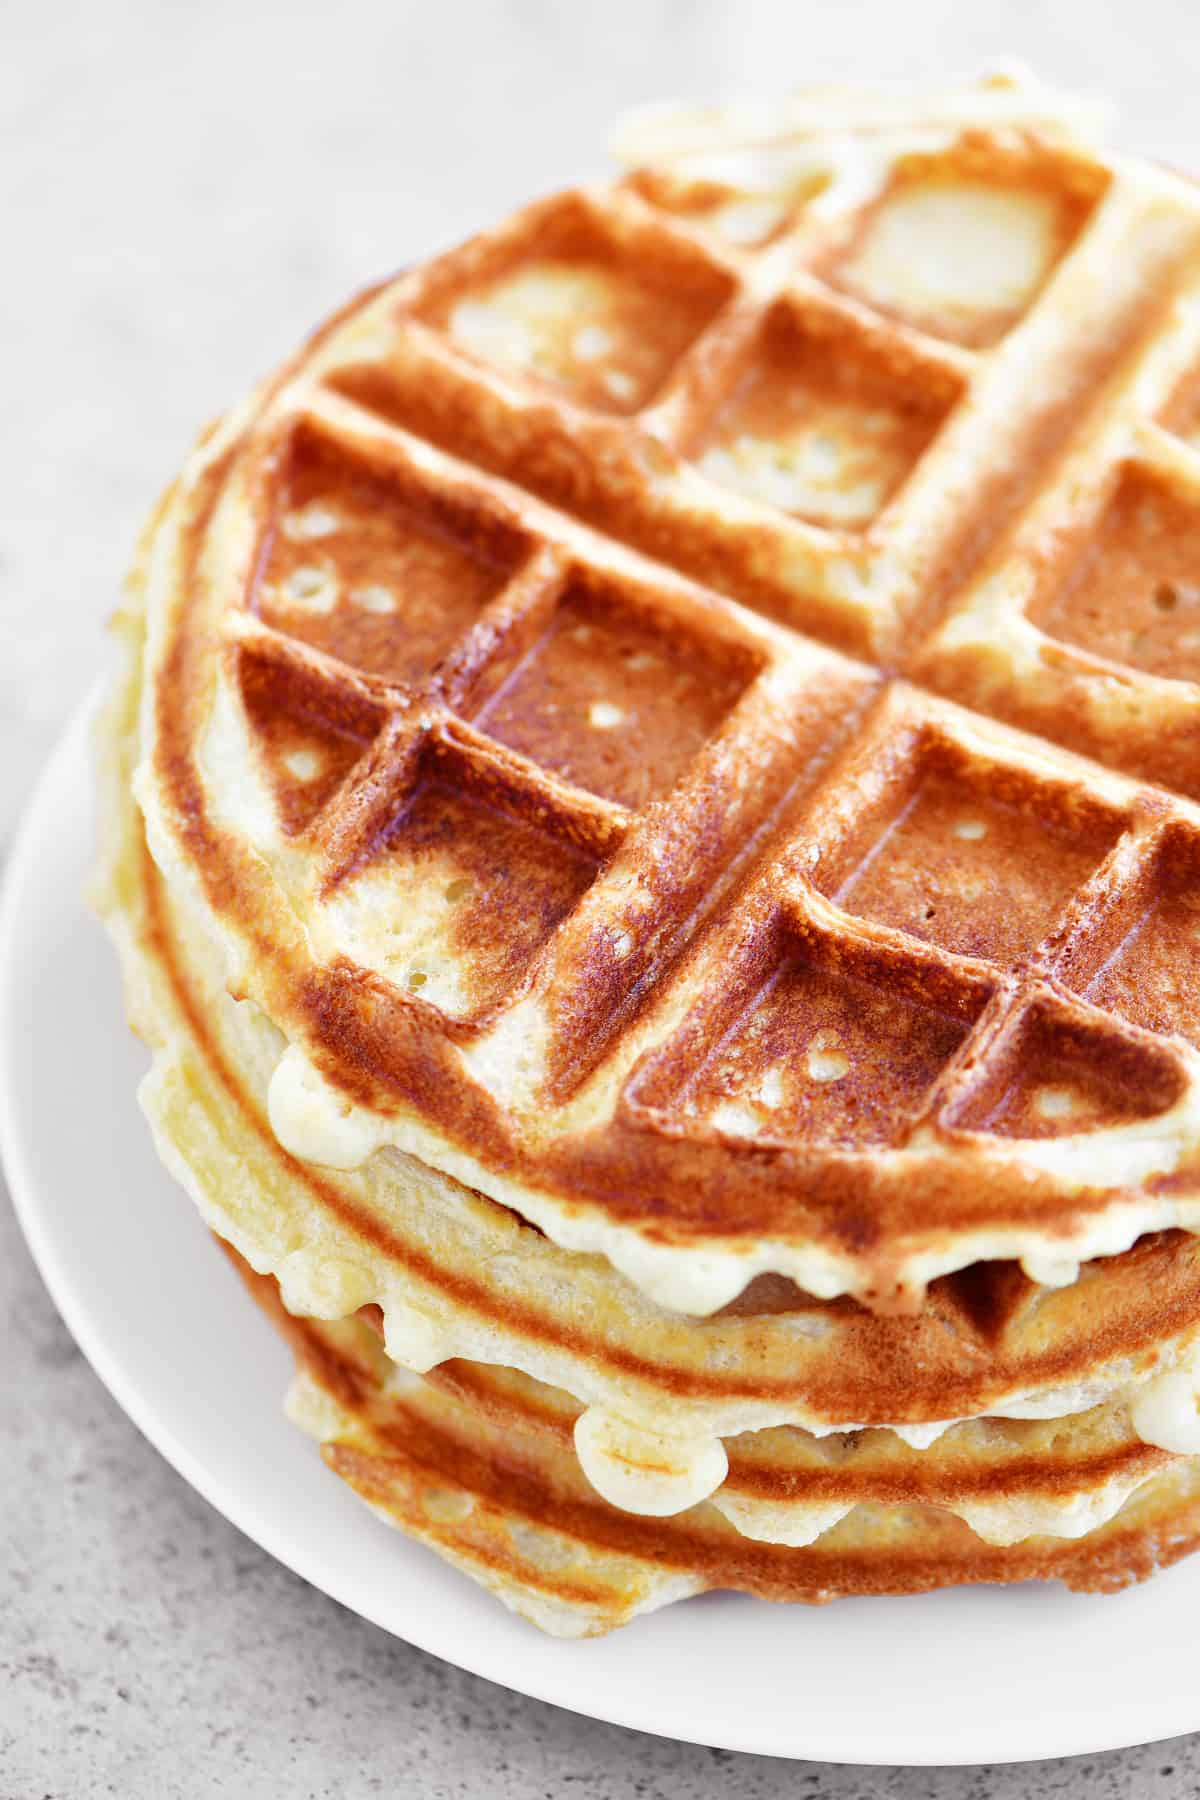 stack of waffles on a white plate